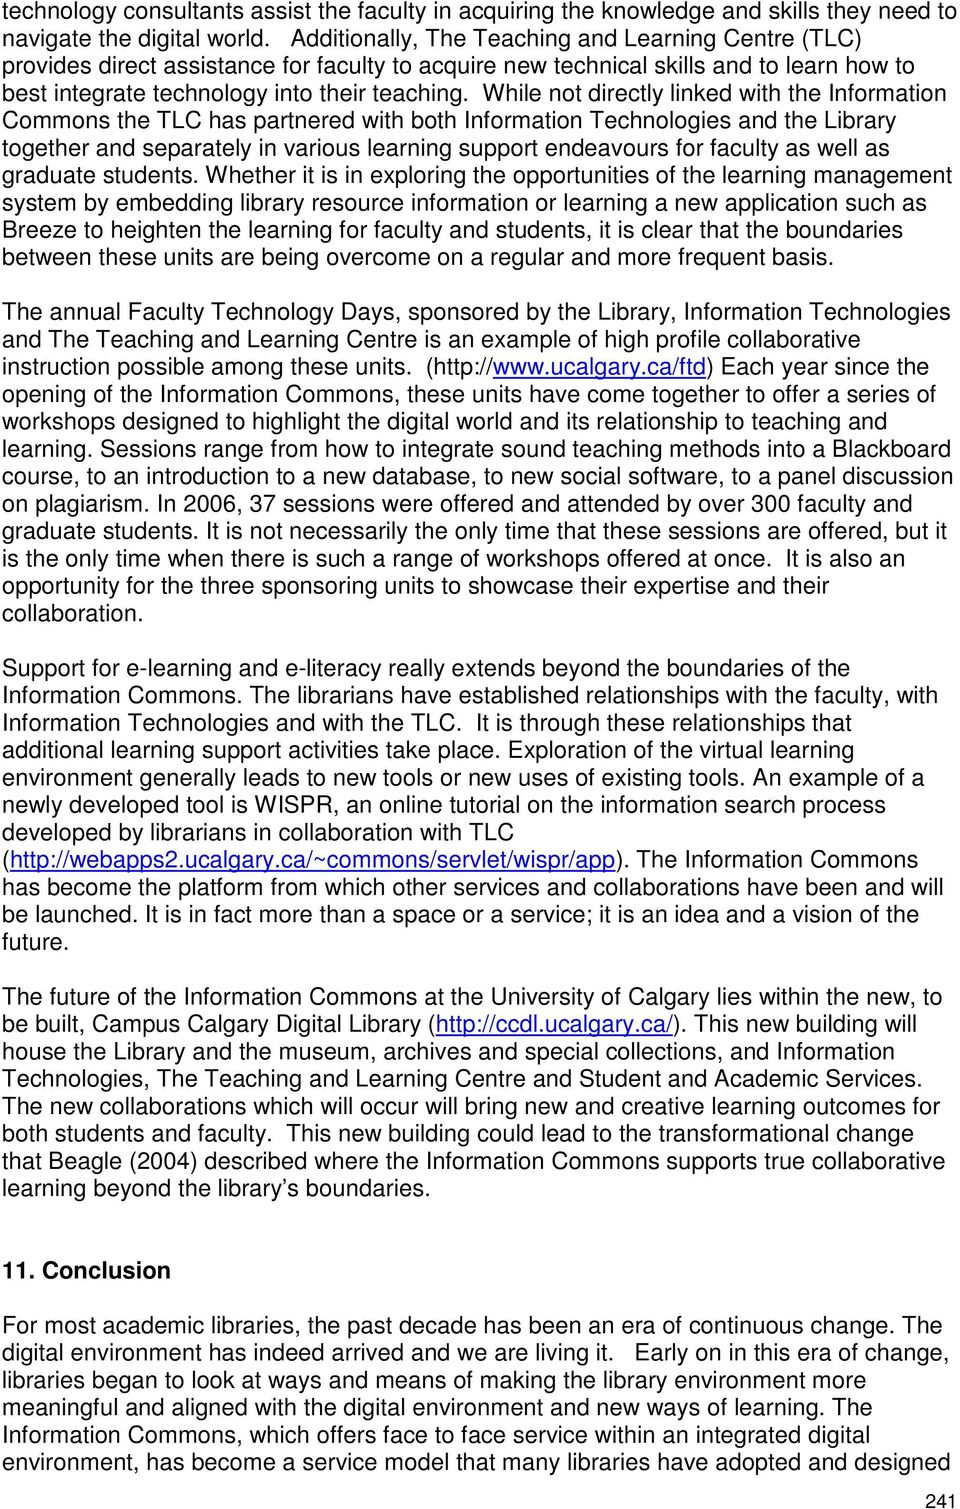 While not directly linked with the Information Commons the TLC has partnered with both Information Technologies and the Library together and separately in various learning support endeavours for